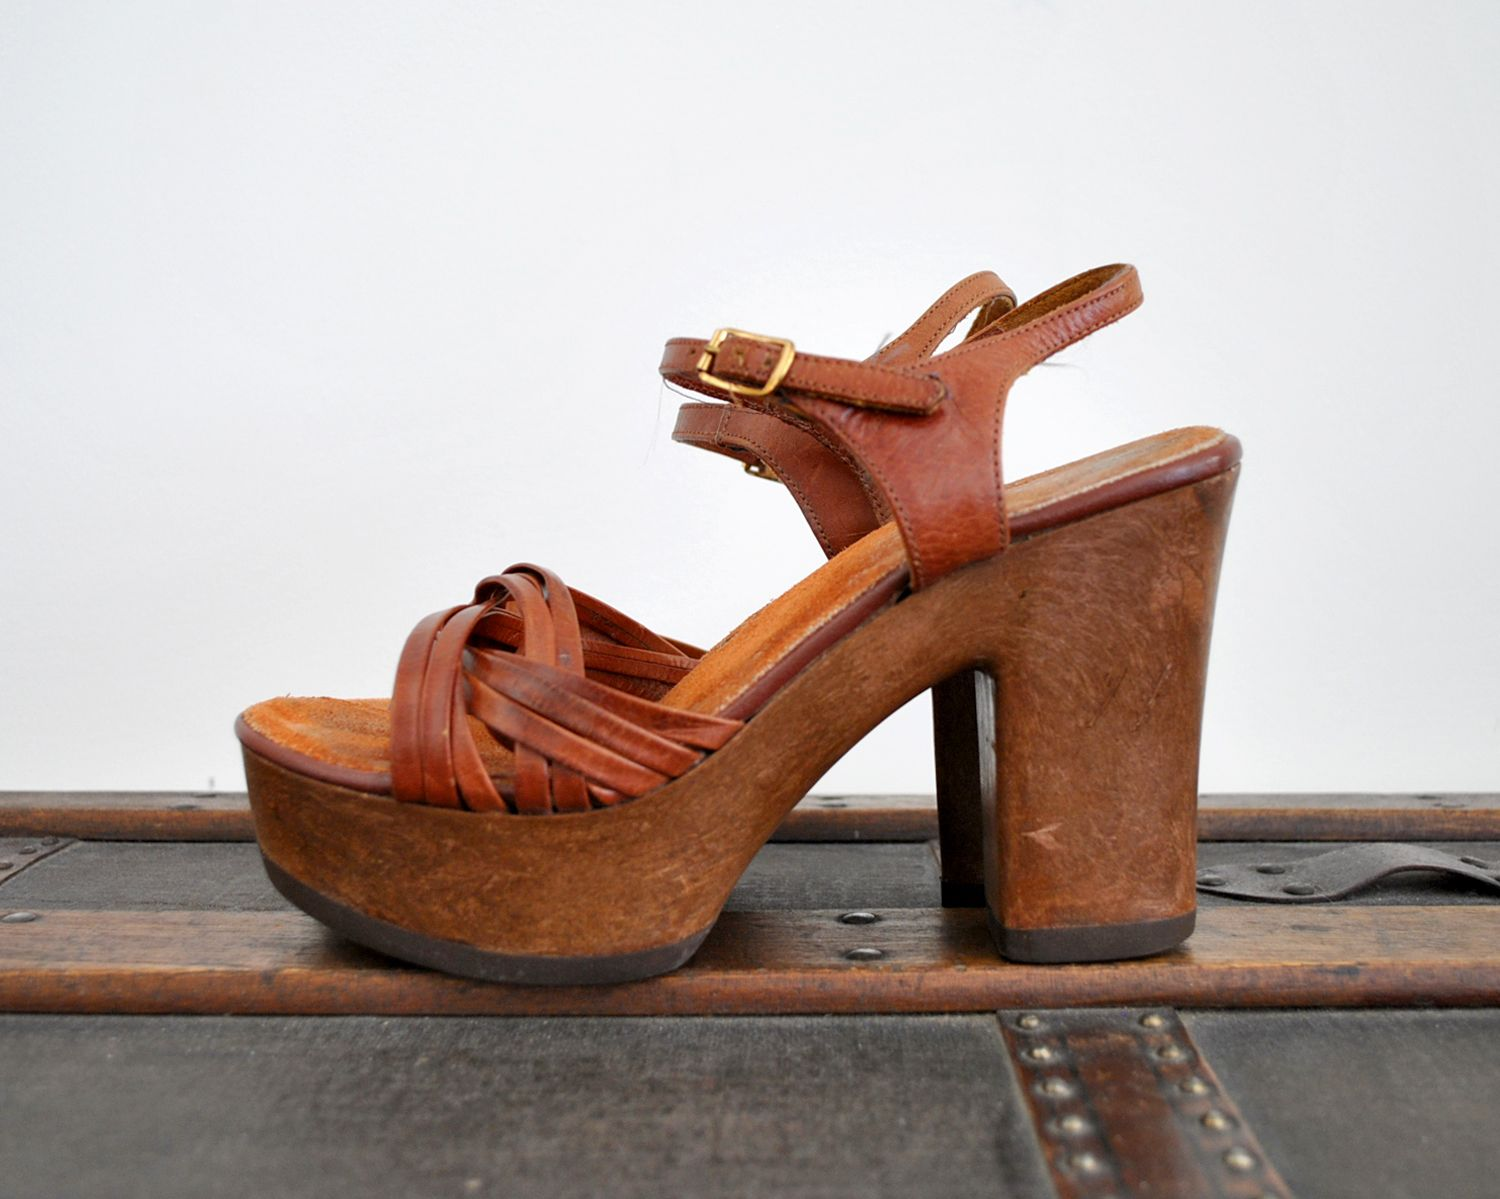 beb28ff13854d 1970's Leather and Wood Platform Heels | boho fashion + lifestyle in ...